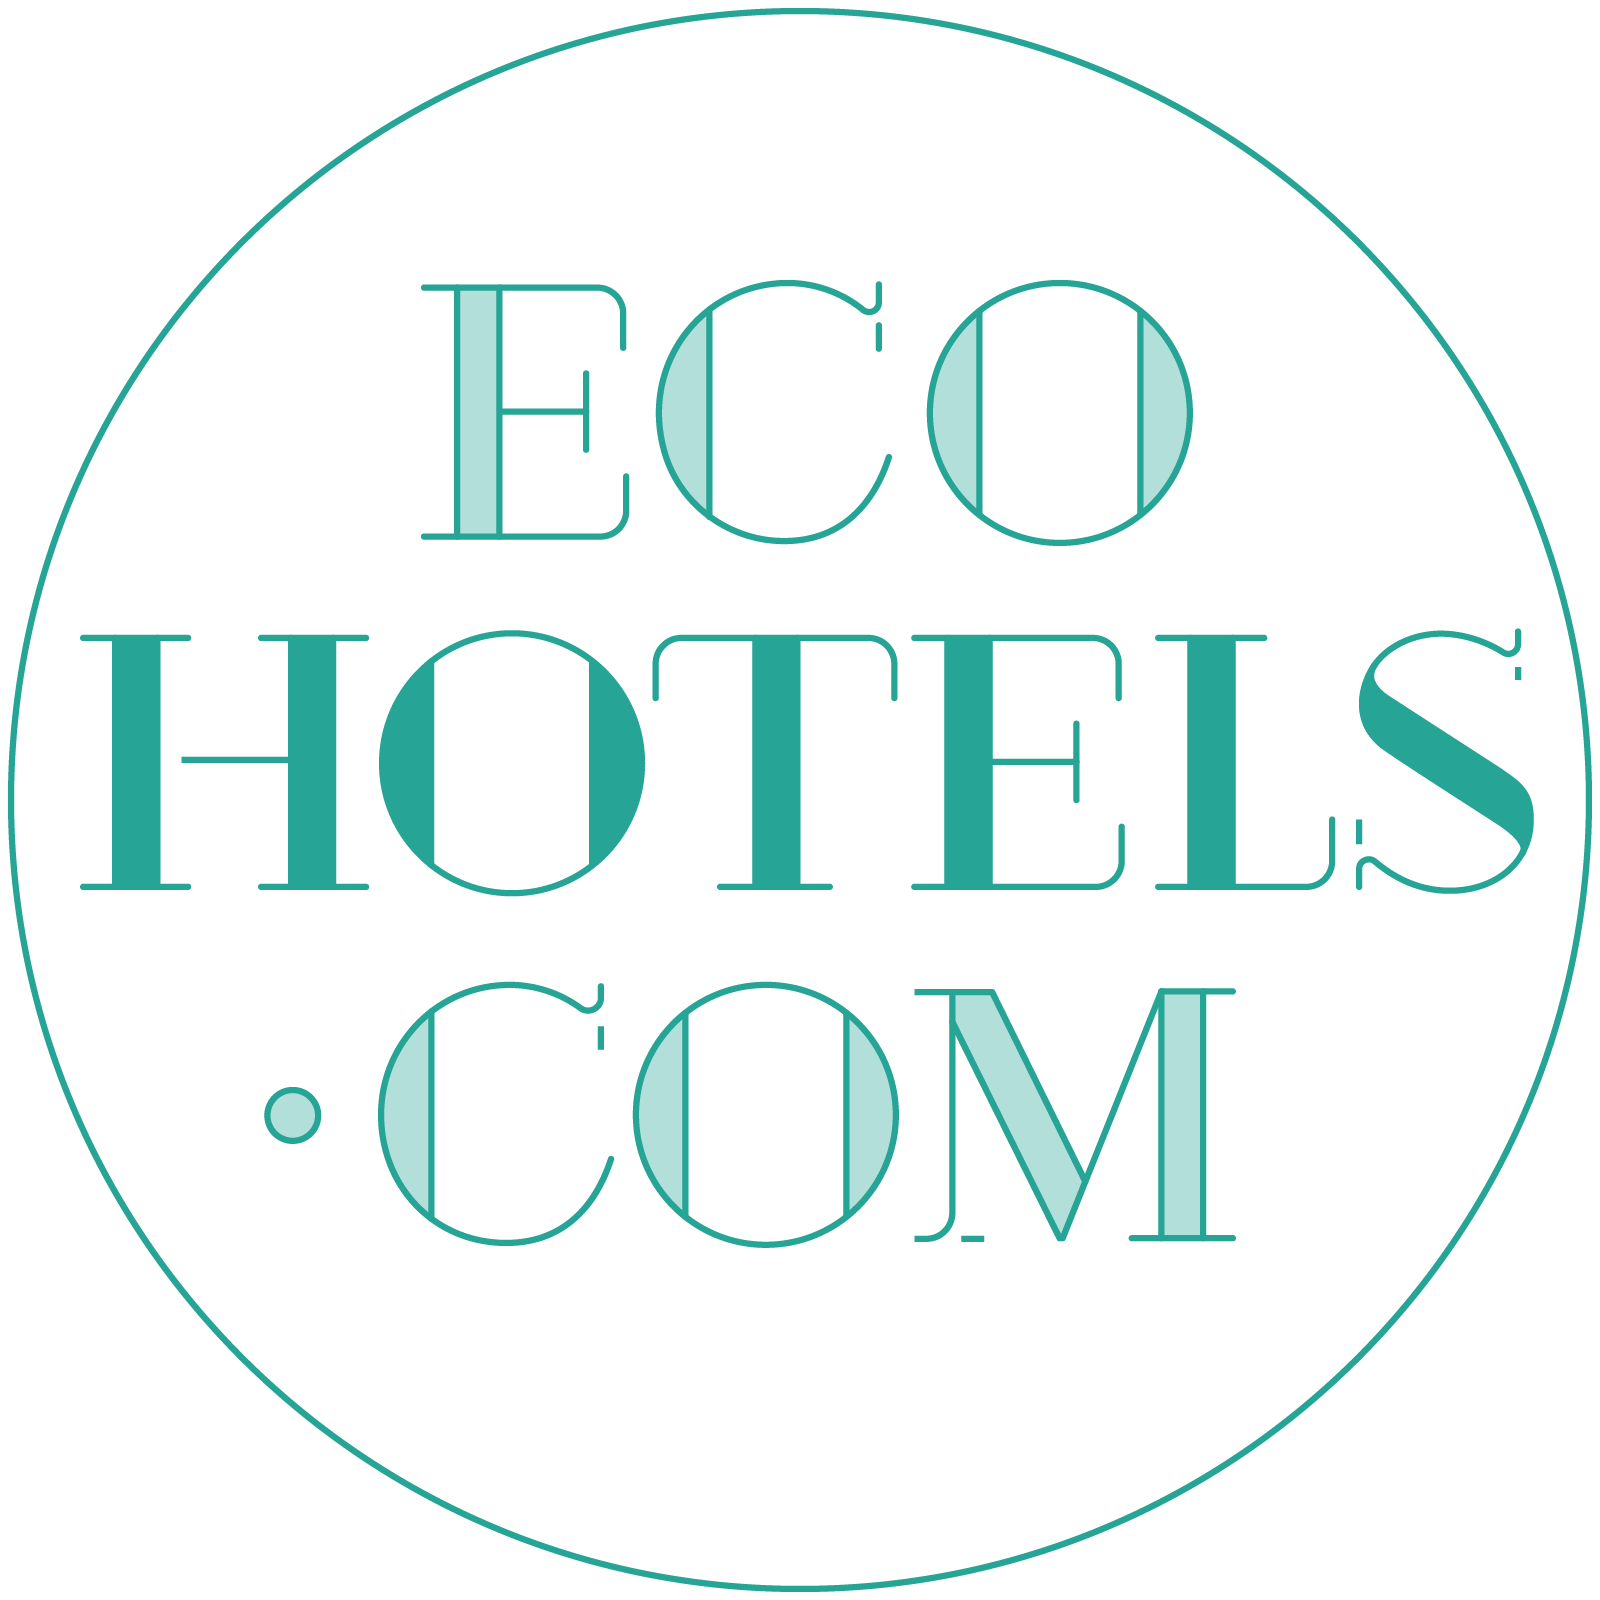 ECO Hotels.com logo